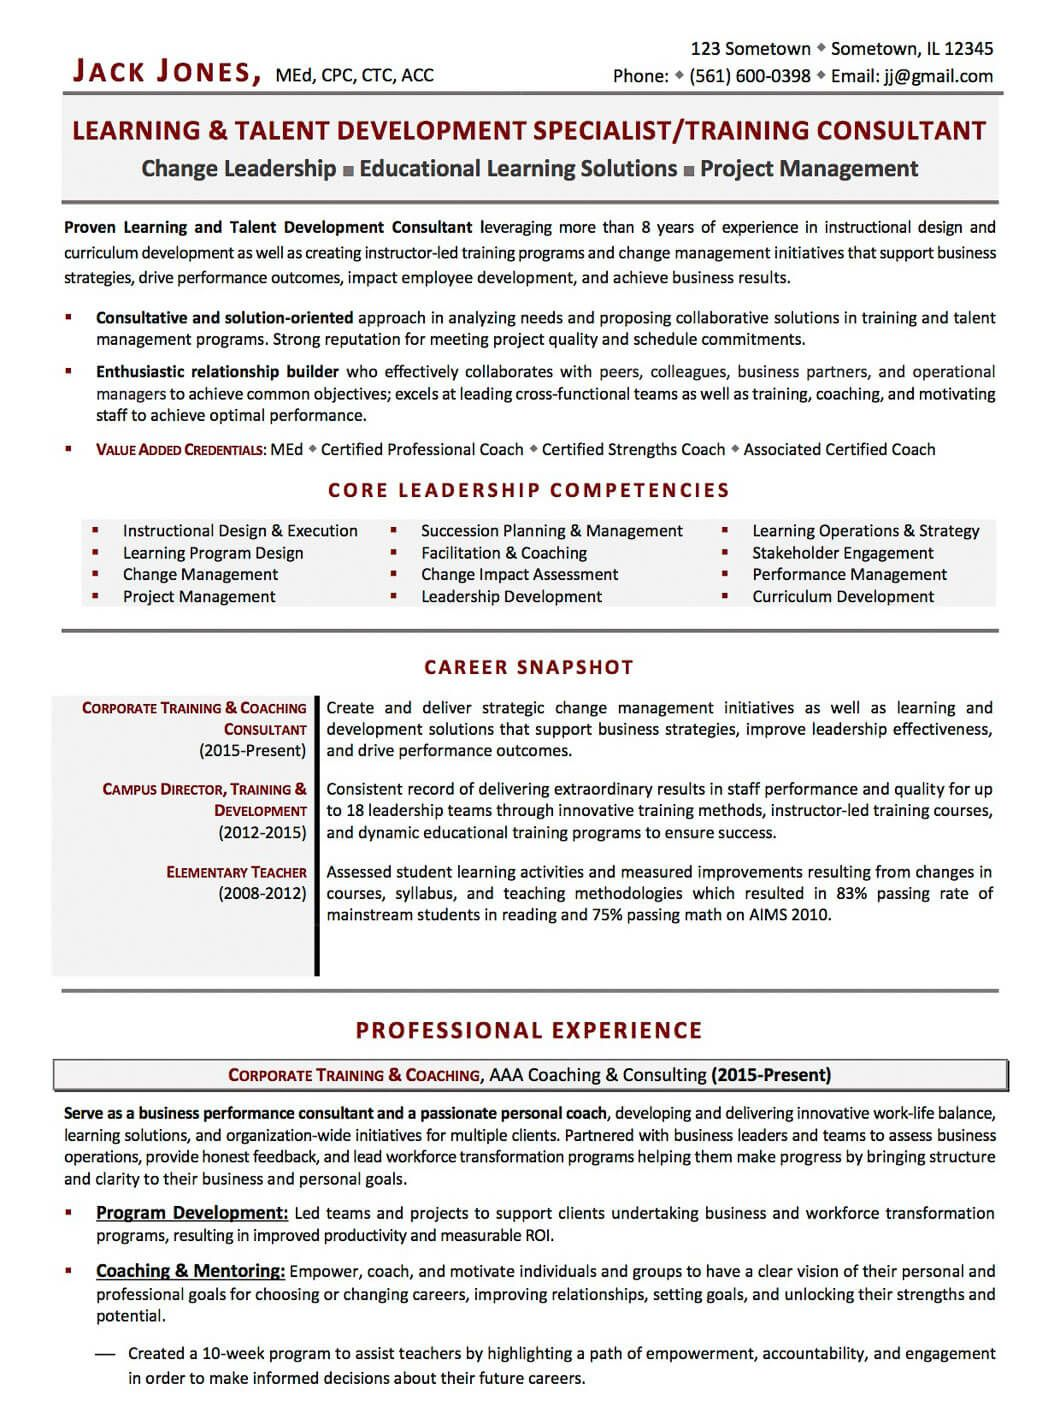 Management Consulting Resume Examples Writing Research Essays University Of Toronto